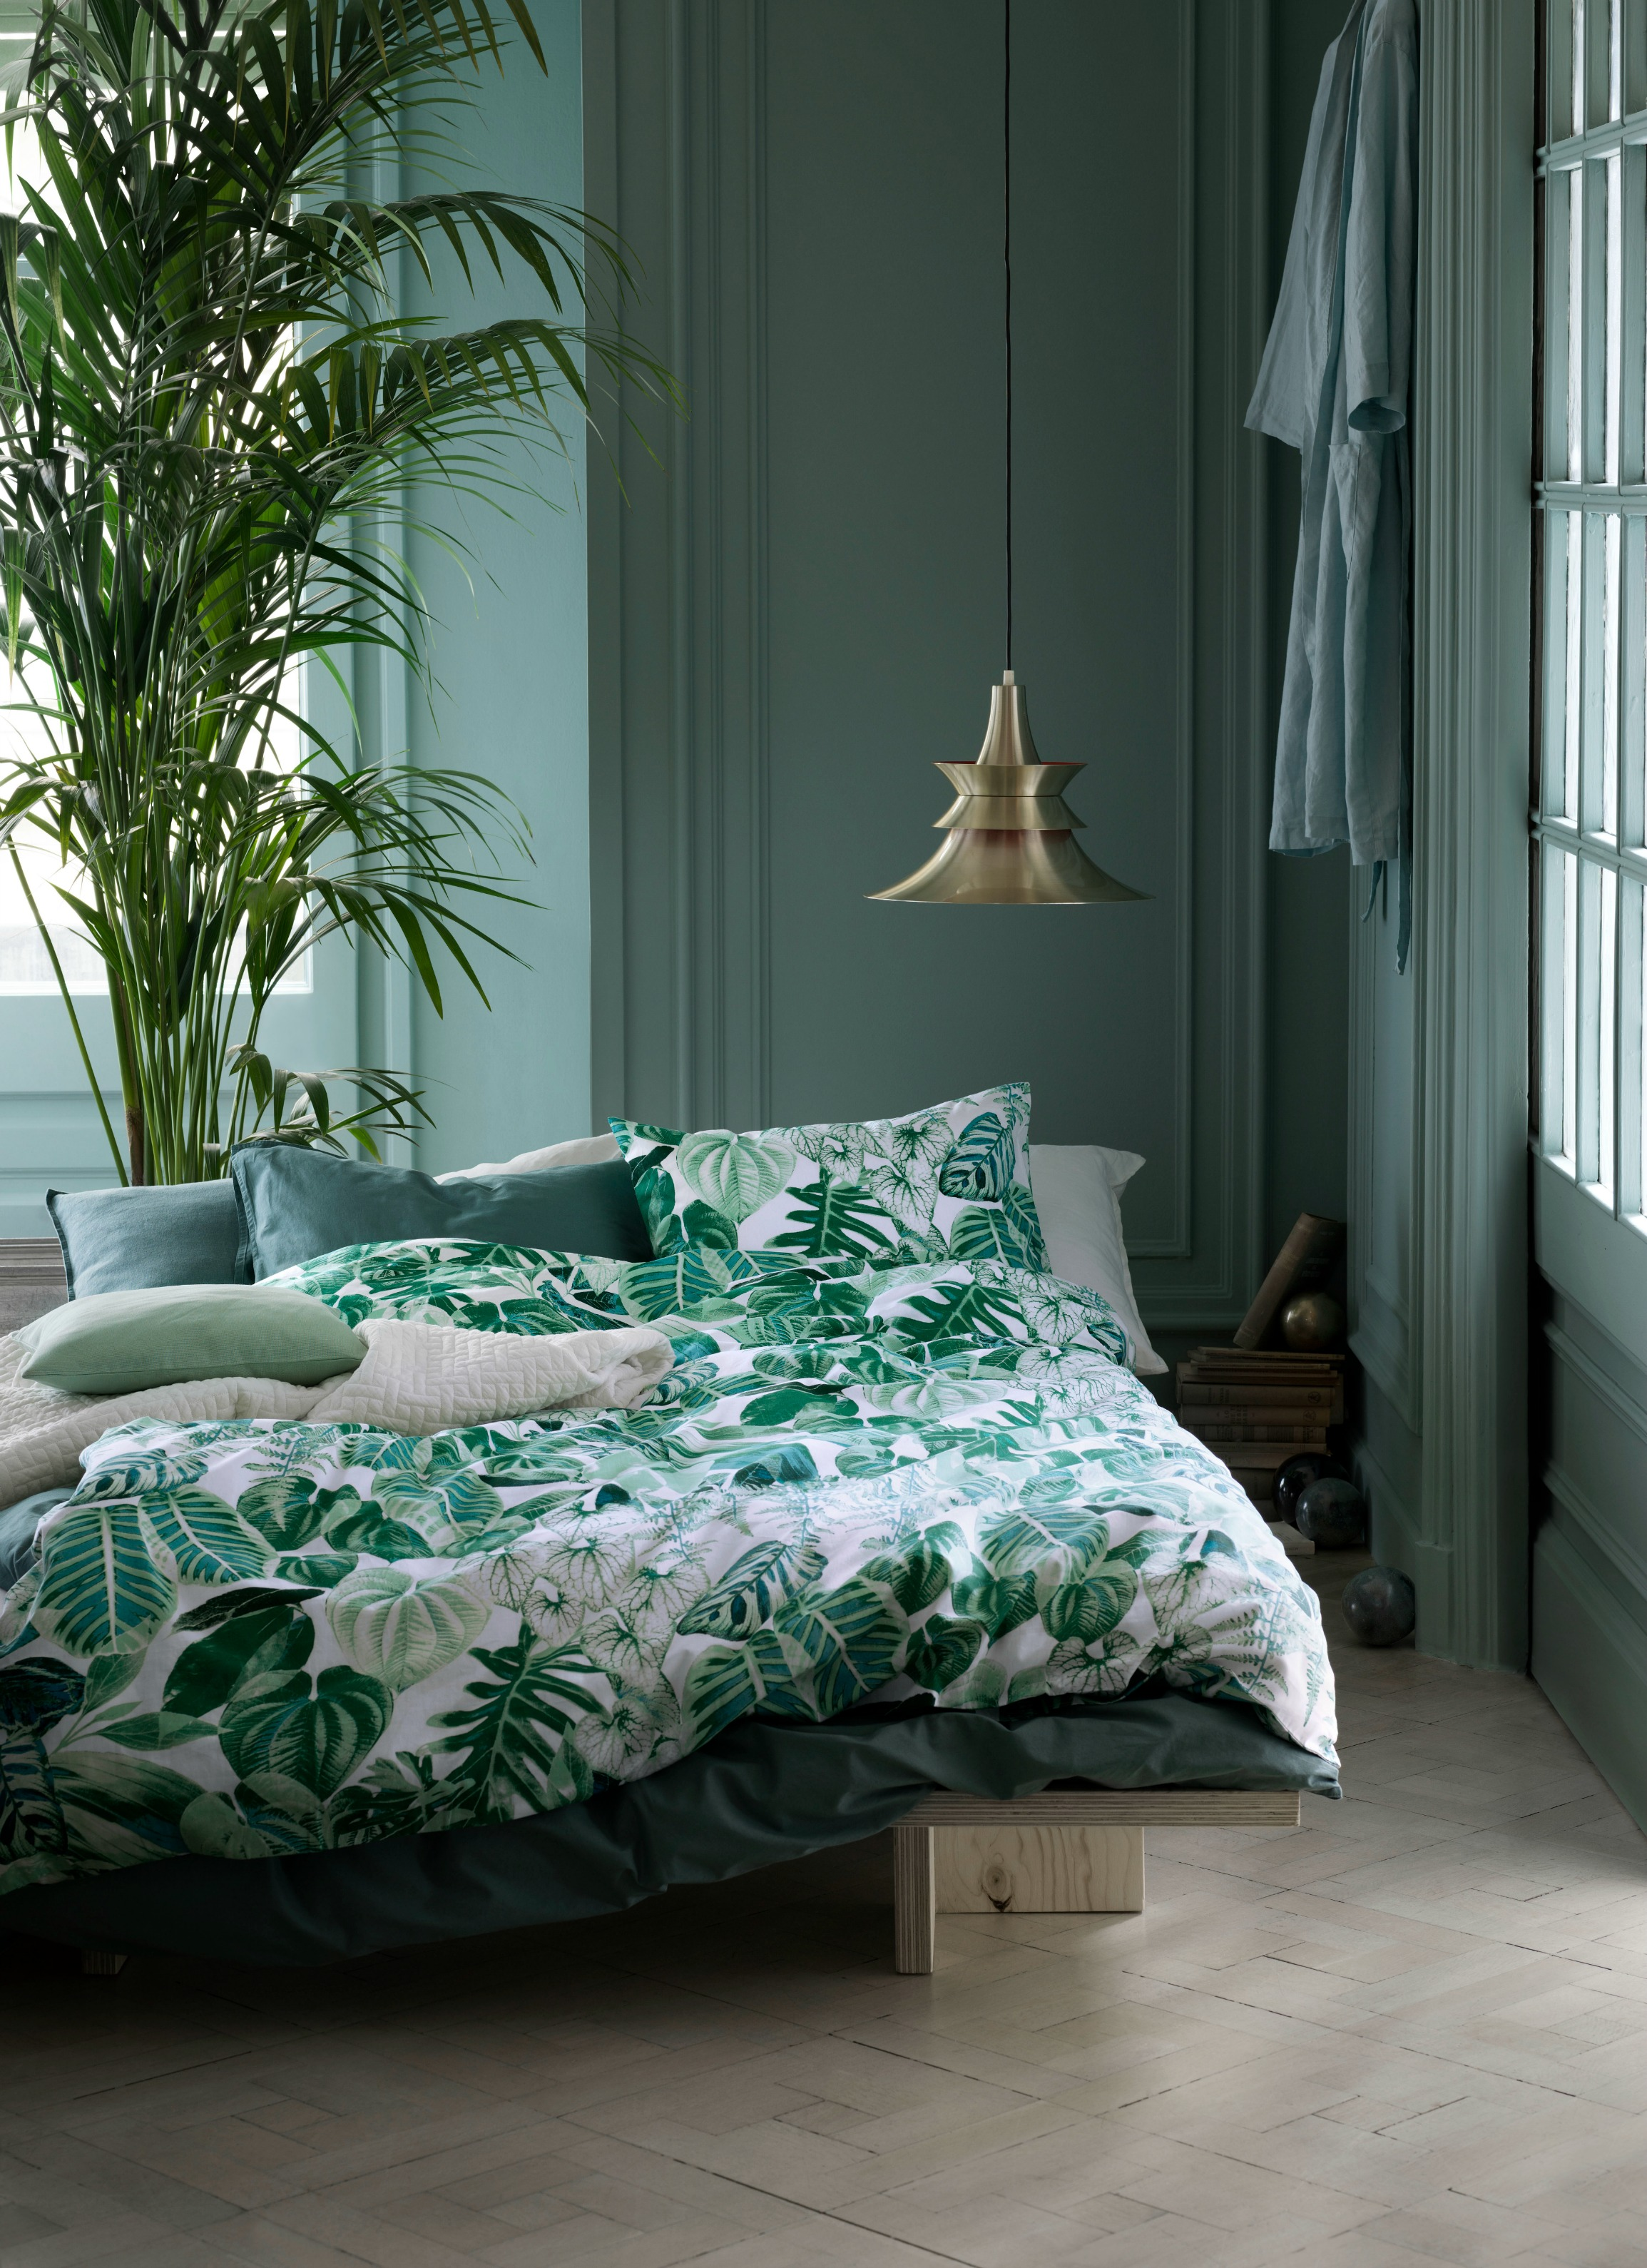 H&M HOME SPRING 2016 COLLECTION весенняя коллекция 2016